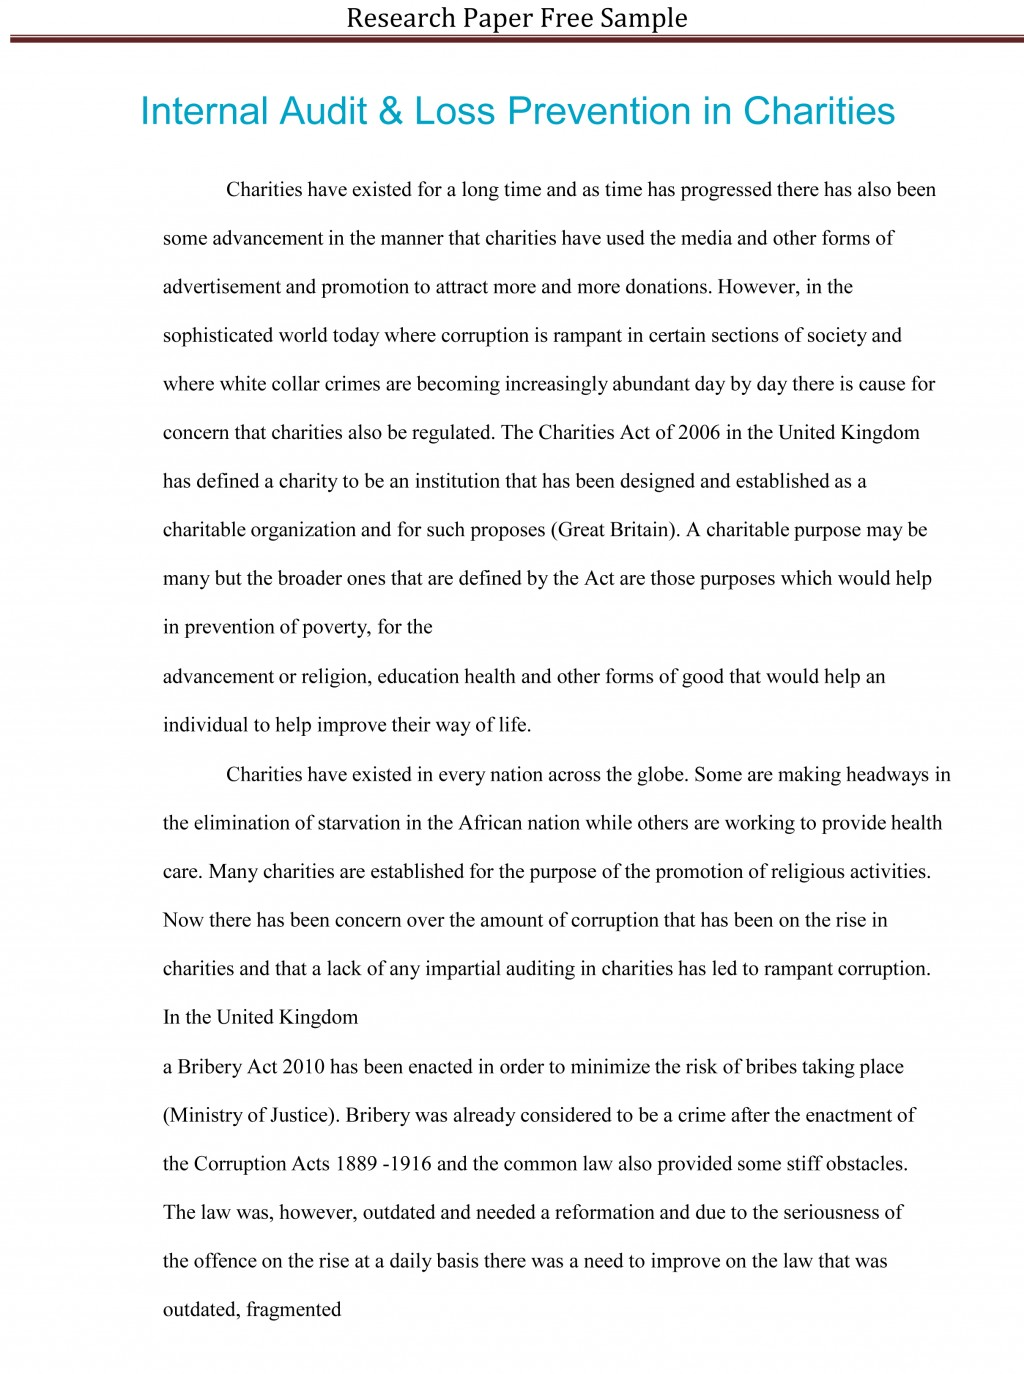 014 Example Of Introduction In Research Paper Help Writing Paragraph Unique Imrad Format About Smoking Cyberbullying Large